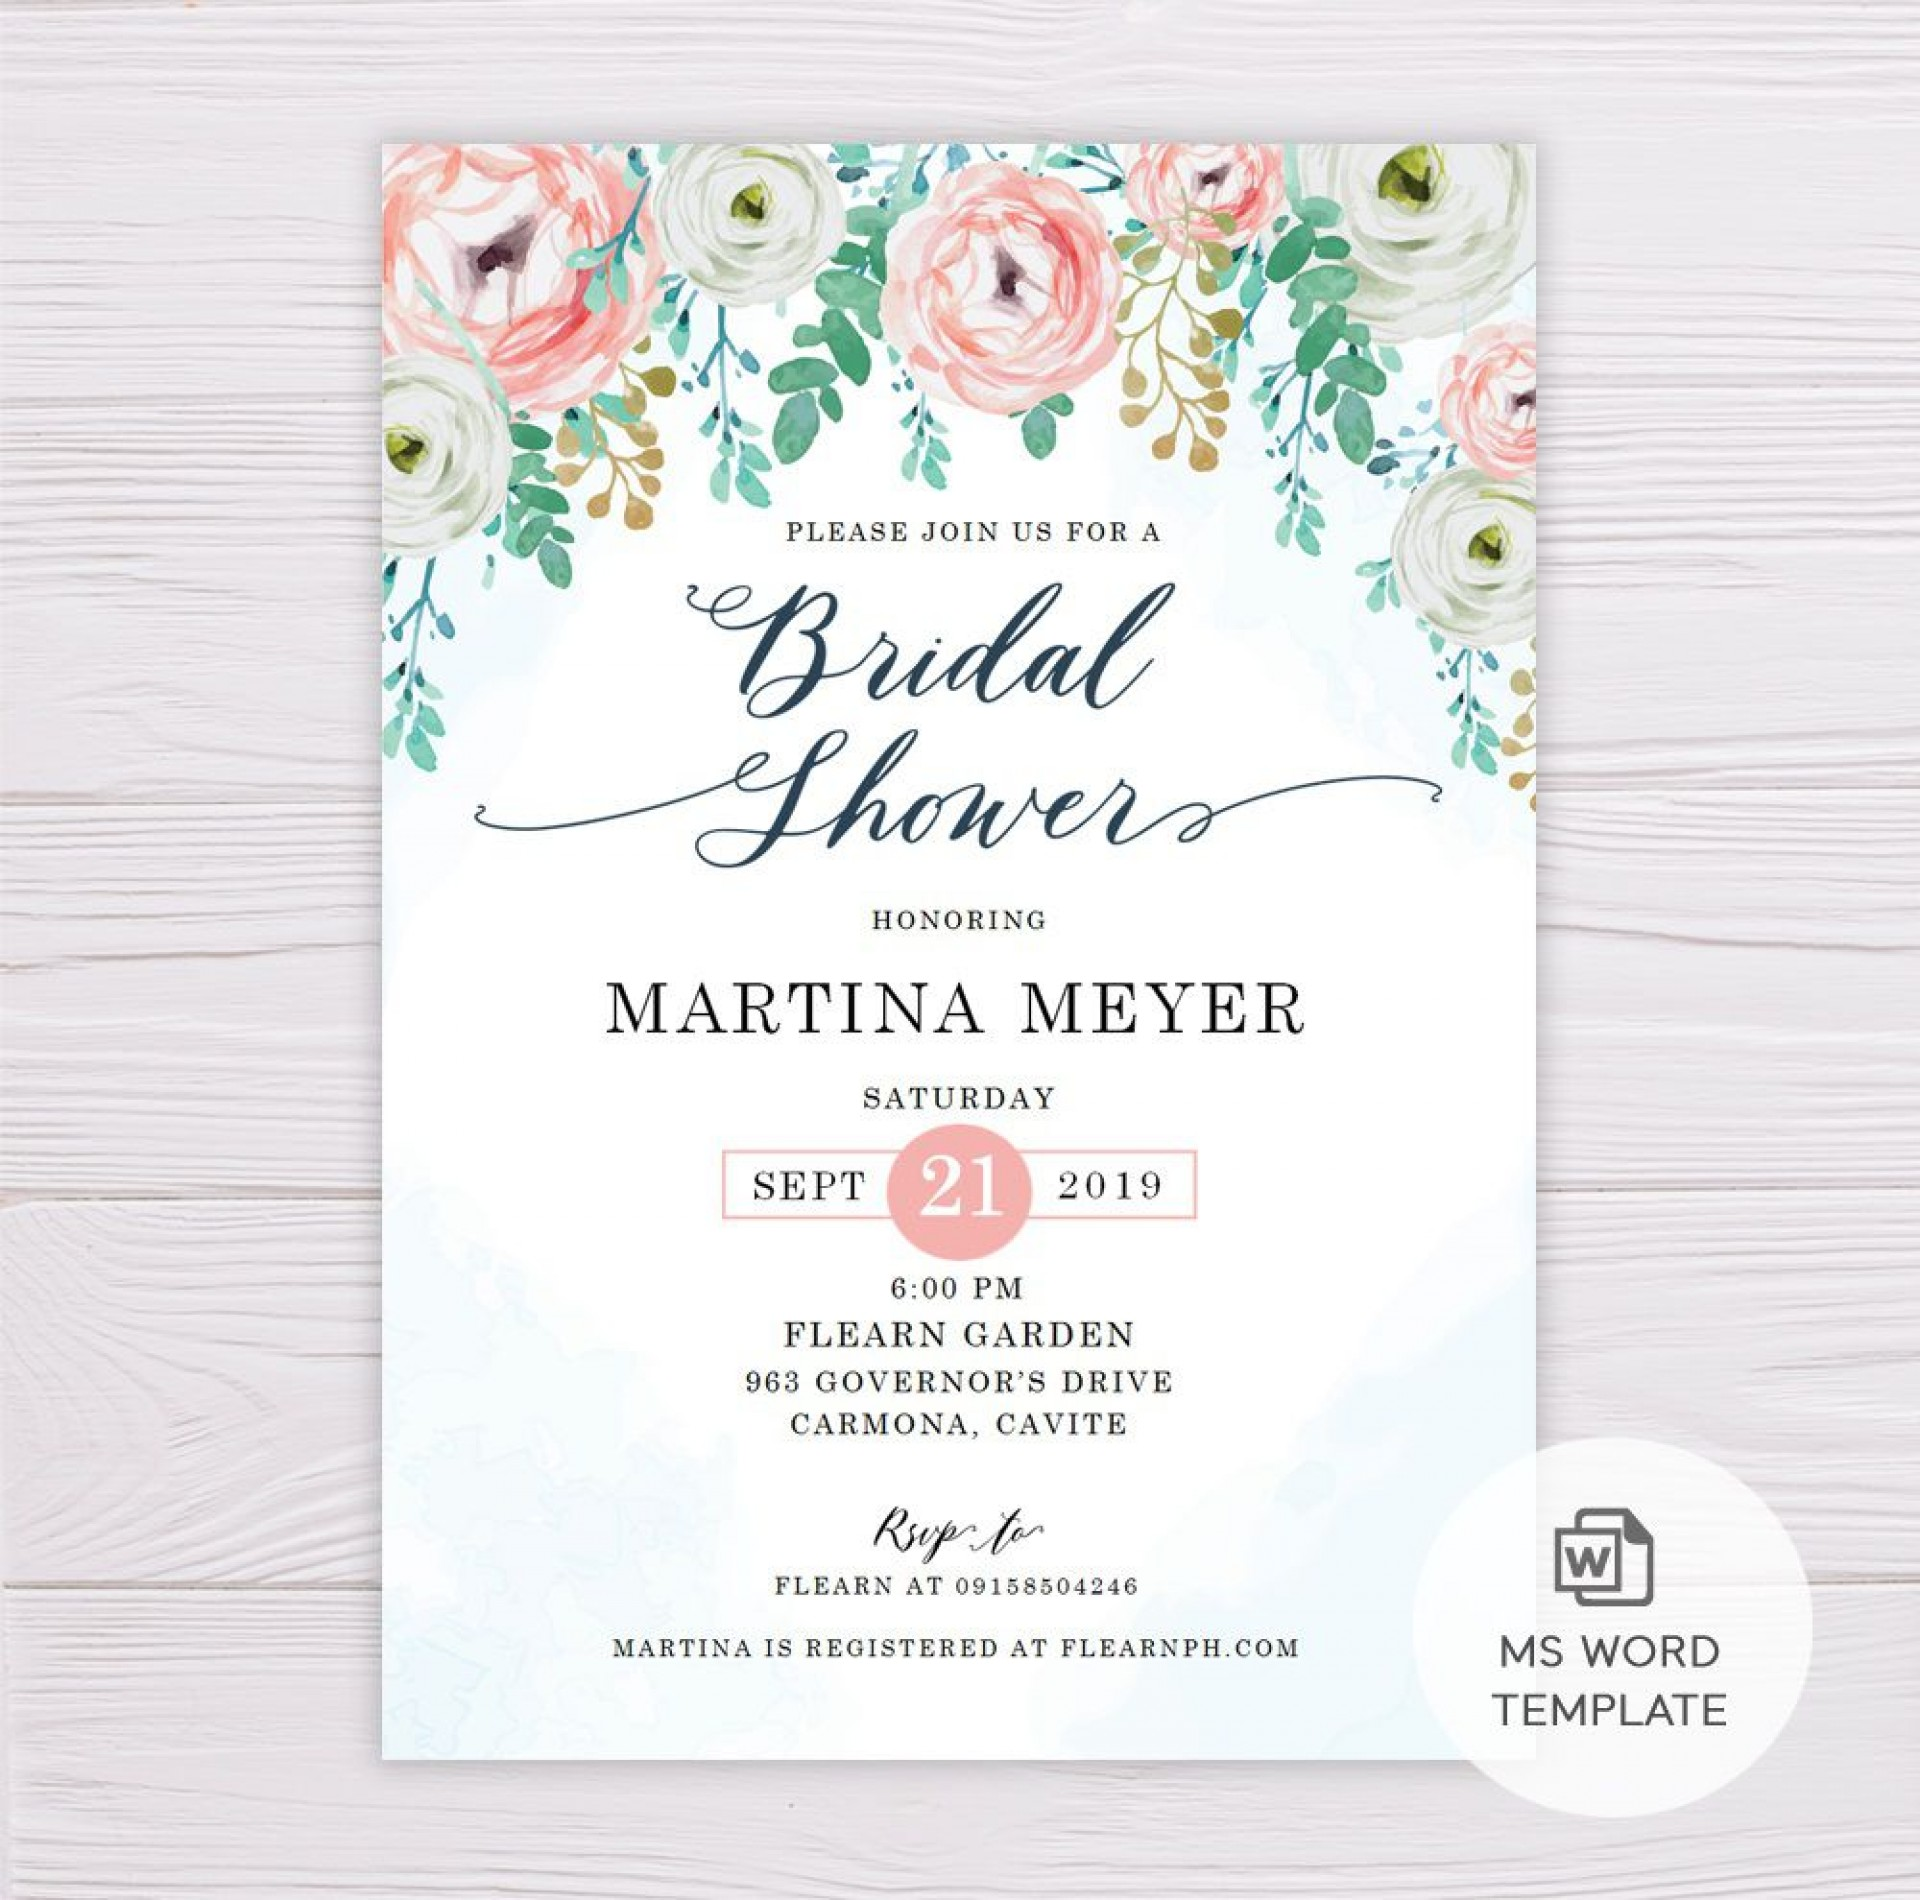 006 Breathtaking Wedding Shower Invitation Template Highest Quality  Templates Bridal Pinterest Microsoft Word Free For1920